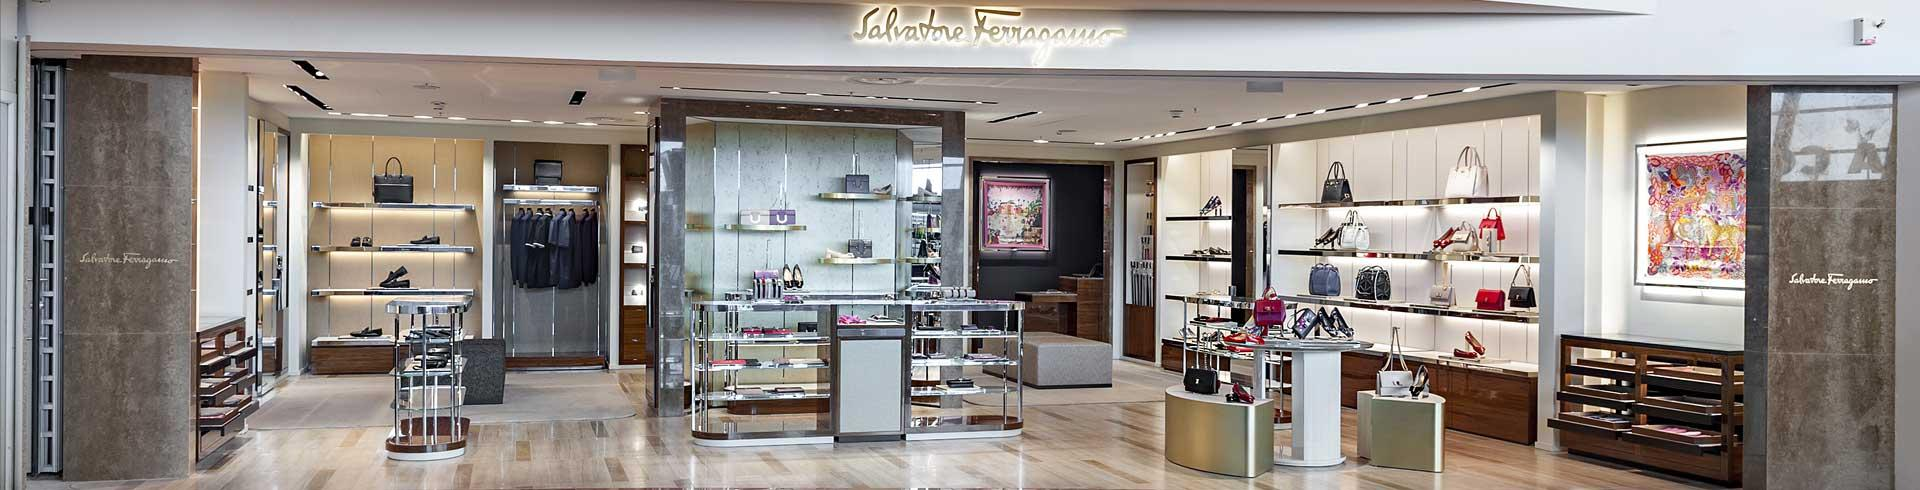 Boutique Salvatore Ferragamo